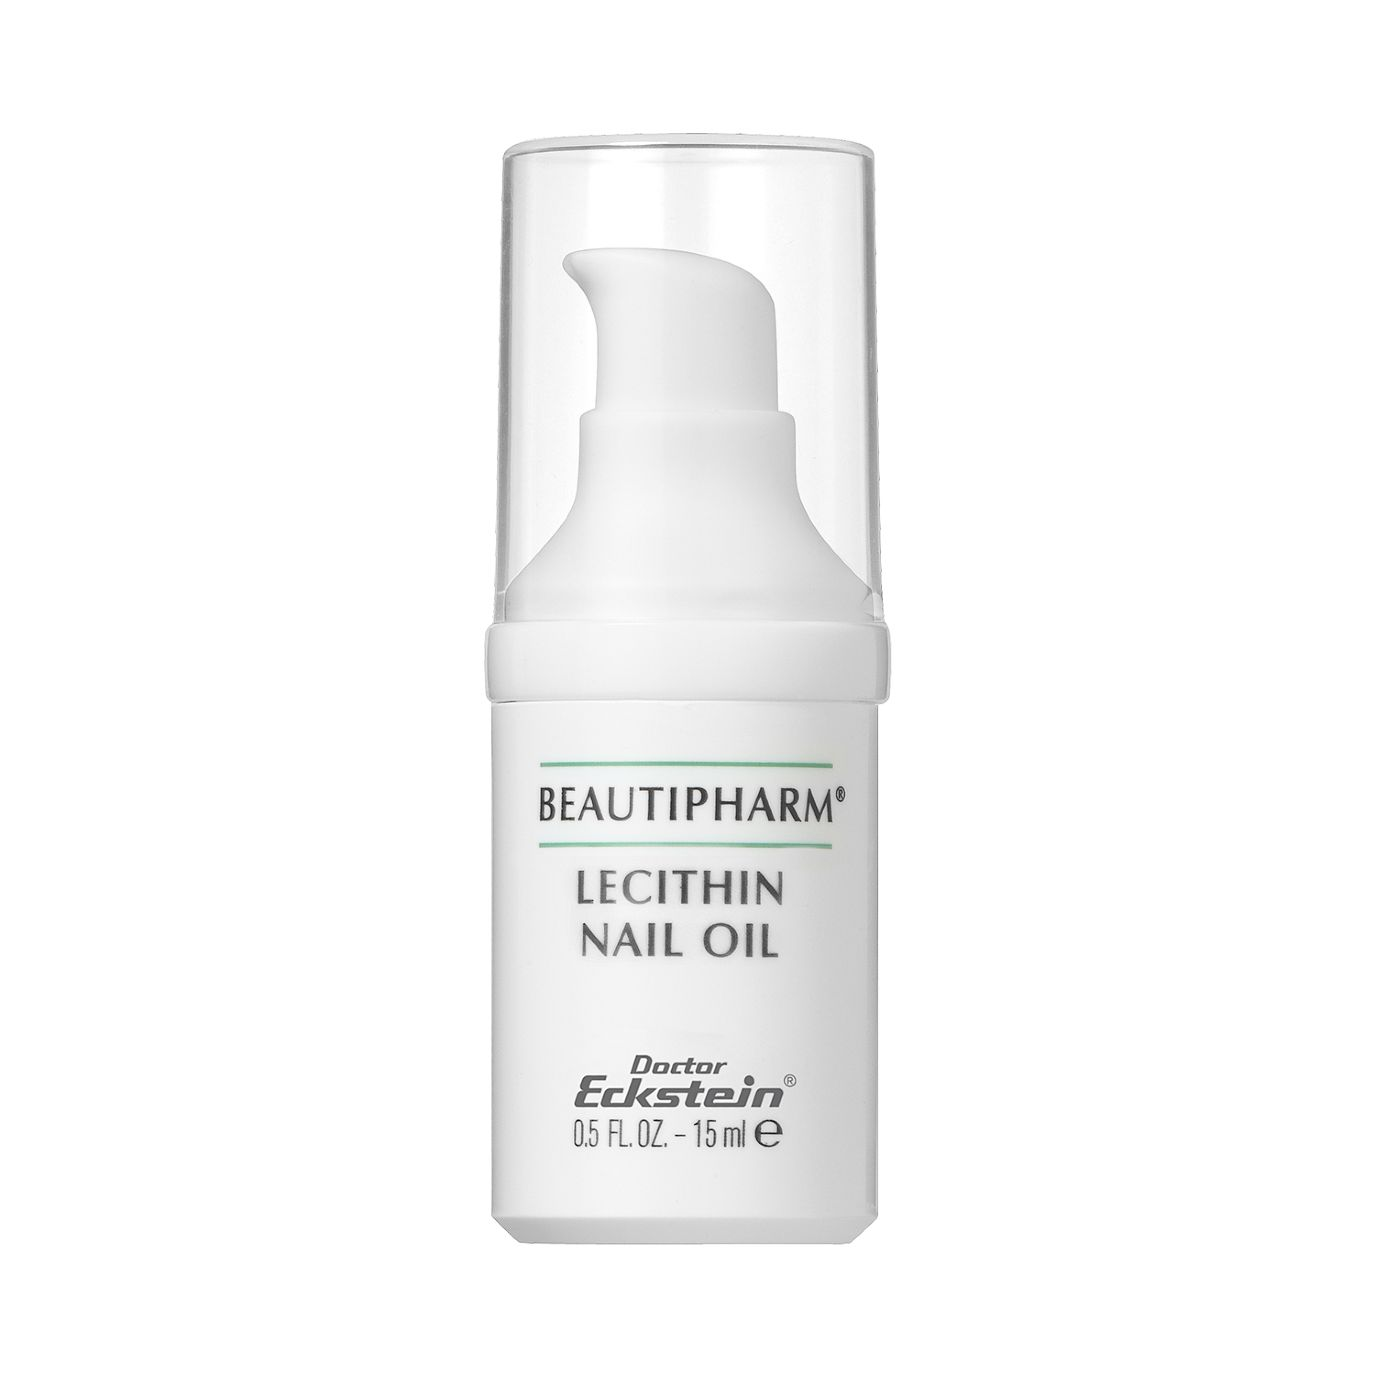 Beautipharm® Lecithin Nail Oil